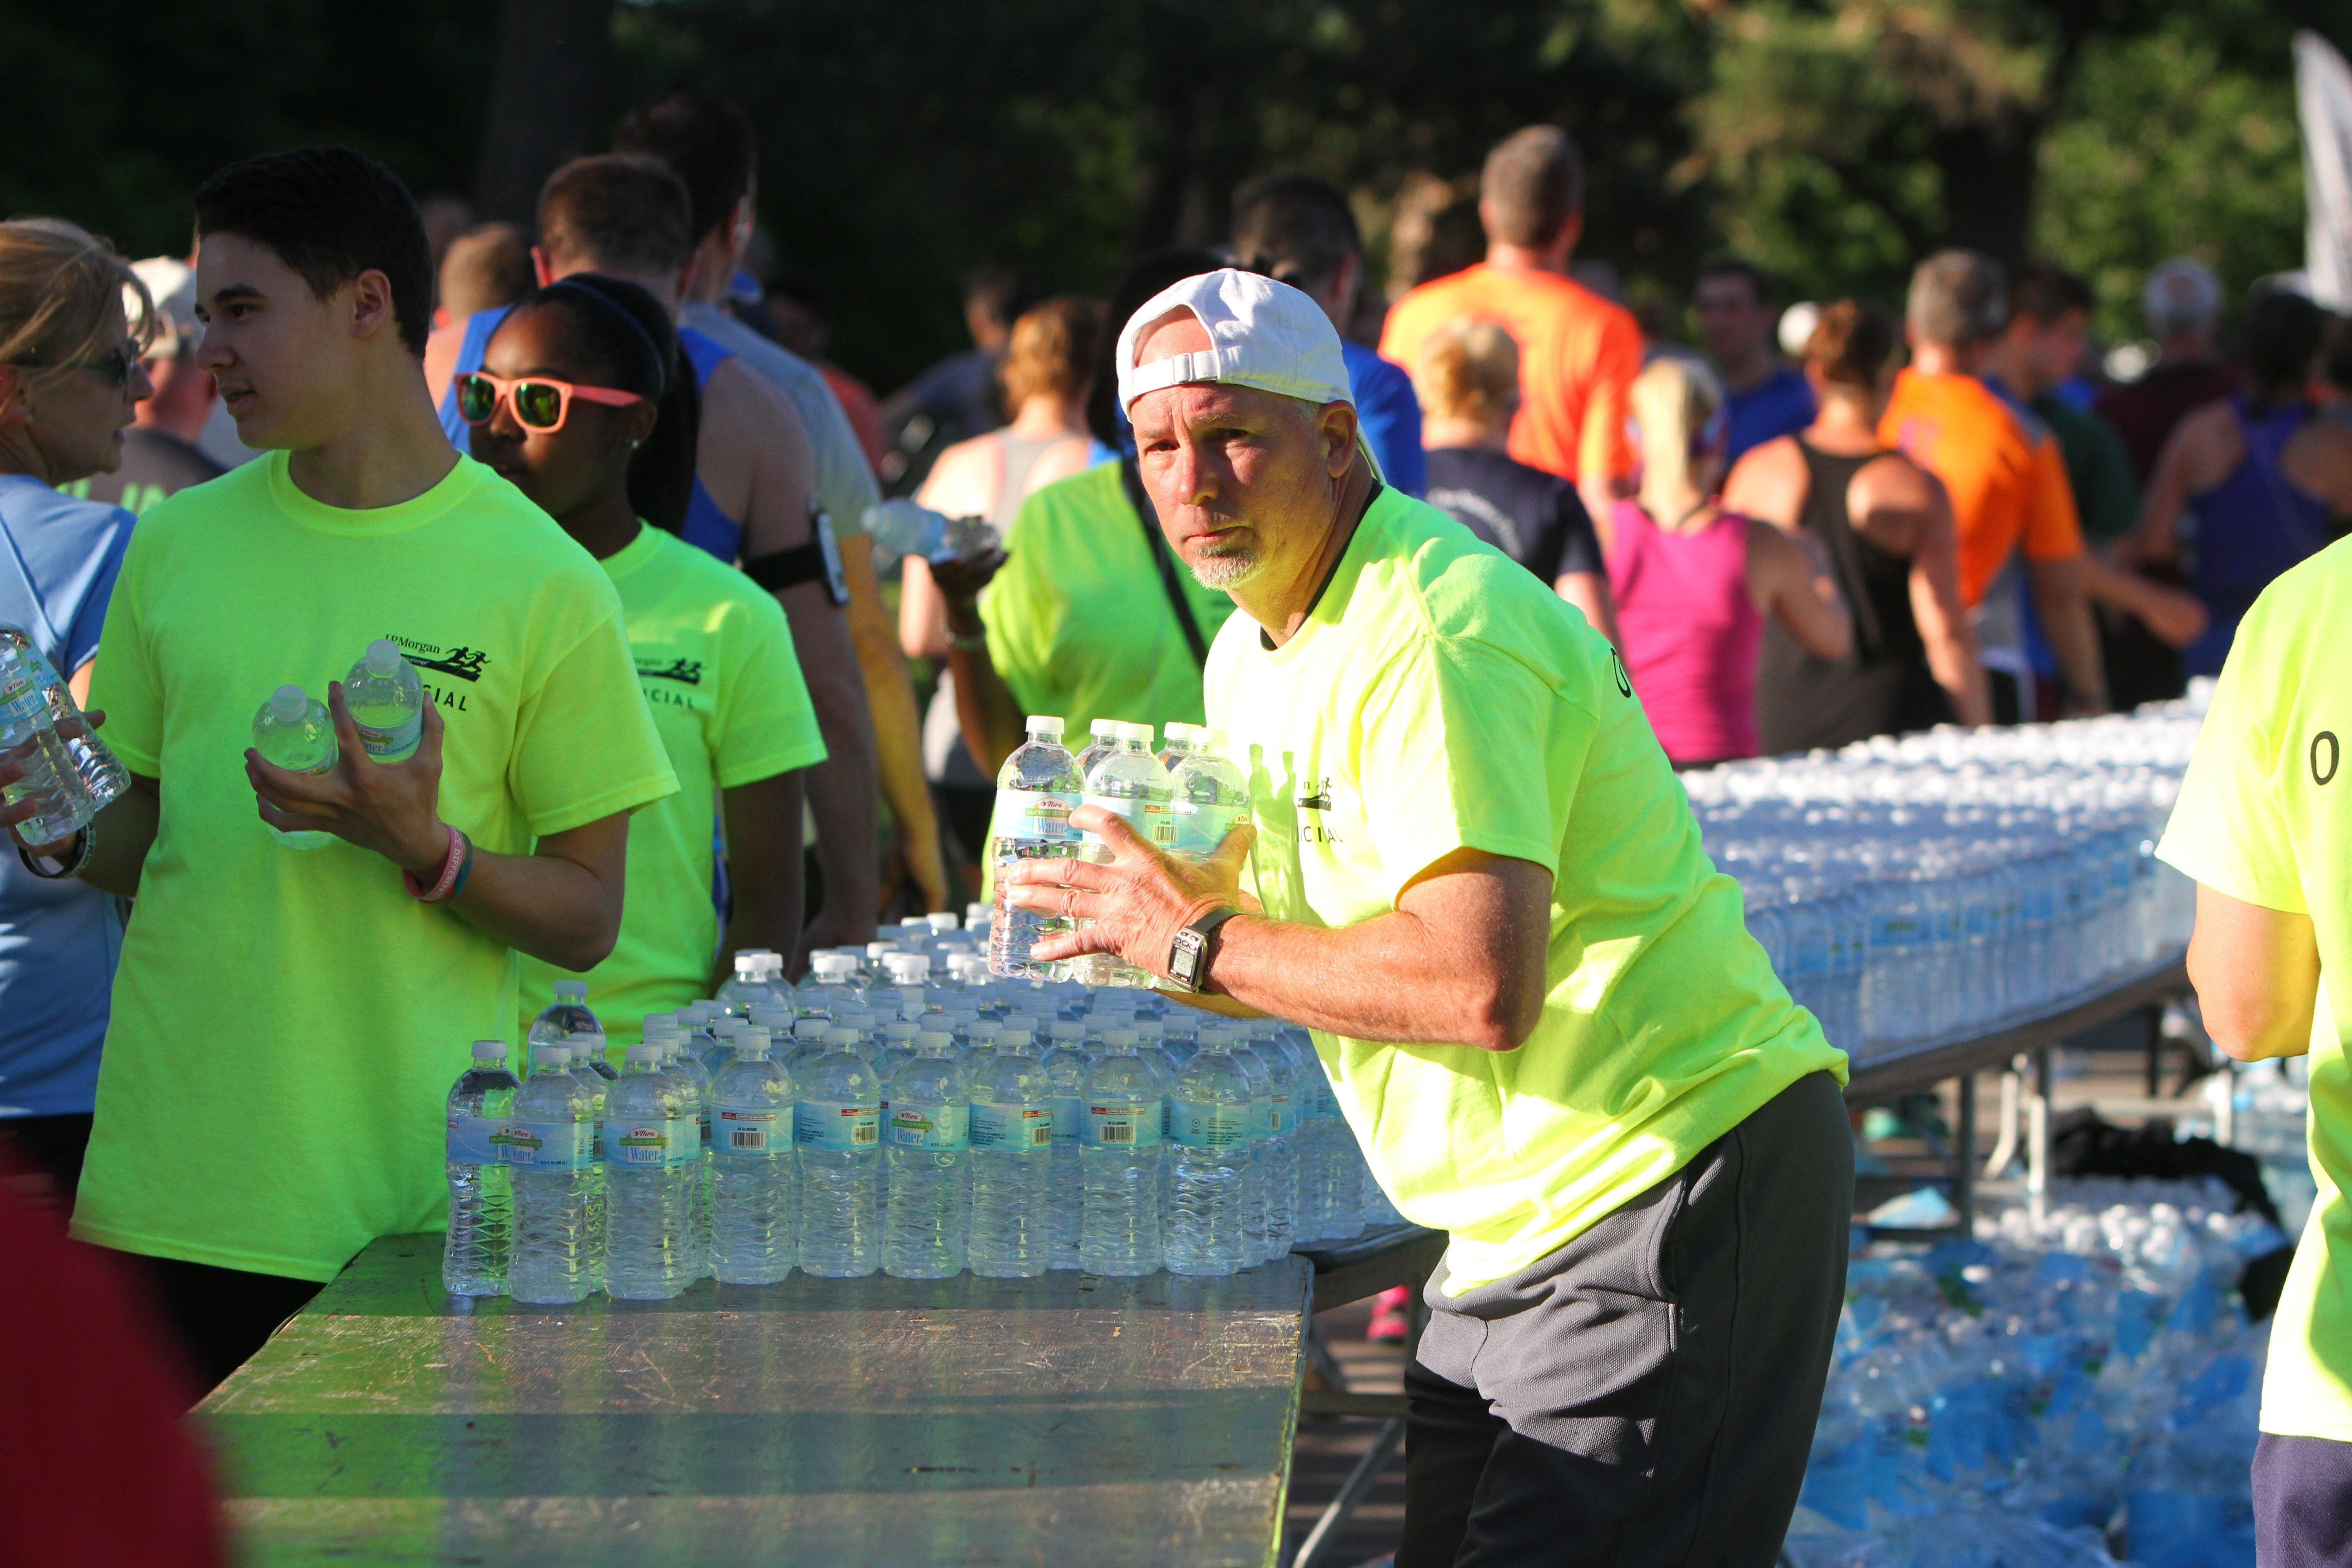 Volunteers pass out water to runners at the finish line during the J.P. Morgan Corporate Challenge.